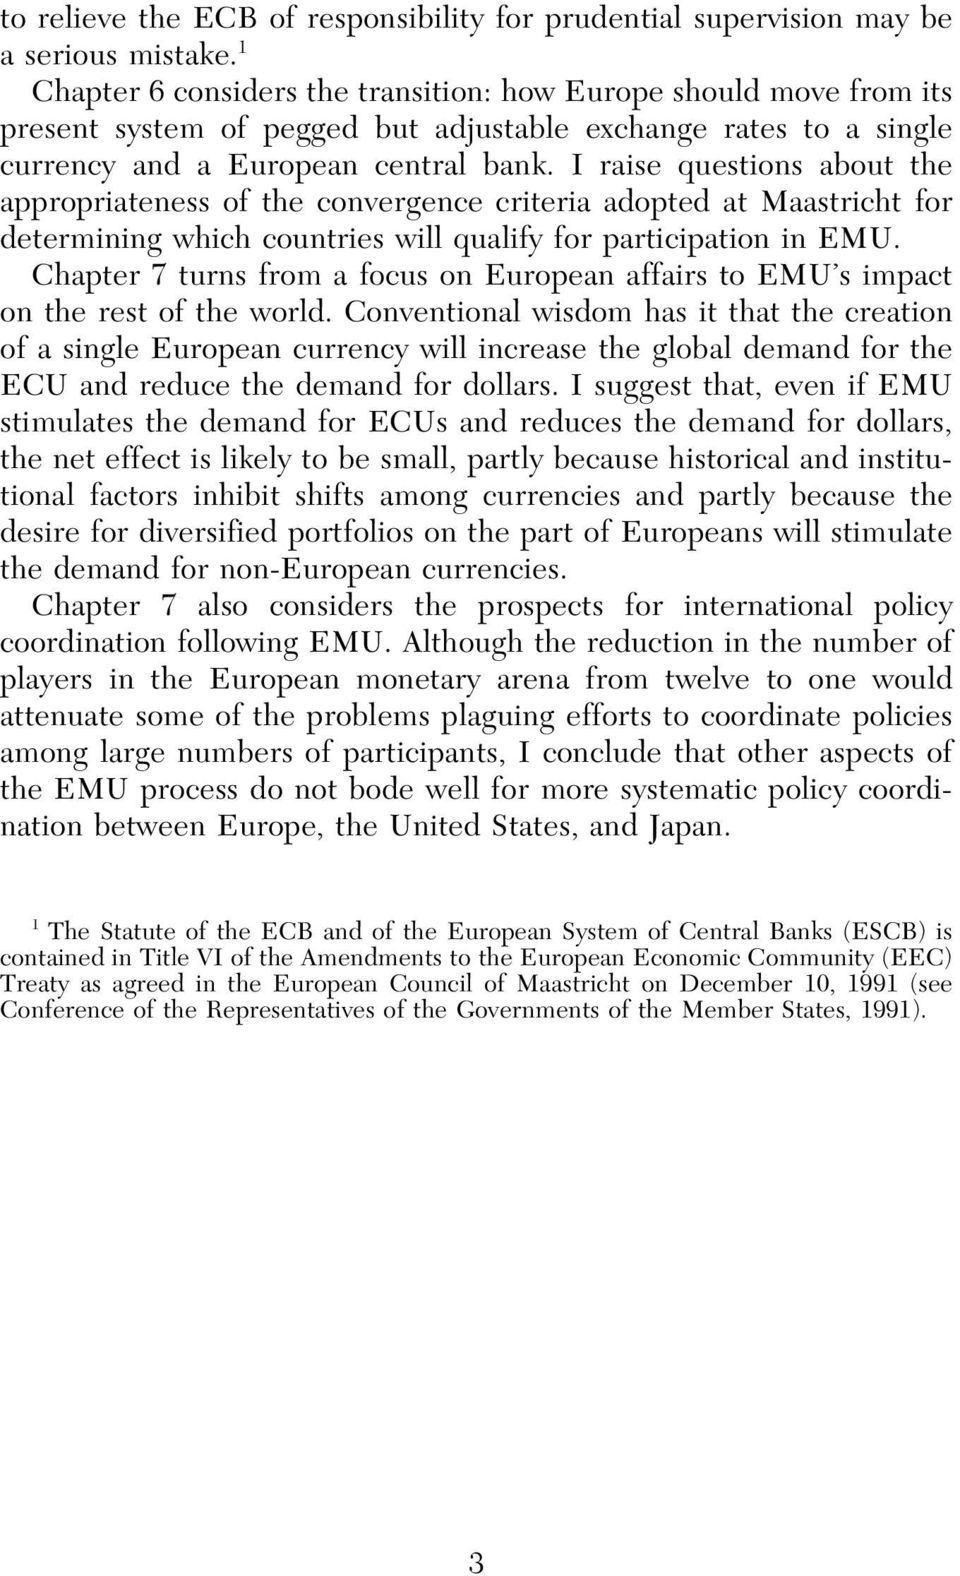 I raise questions about the appropriateness of the convergence criteria adopted at Maastricht for determining which countries will qualify for participation in EMU.